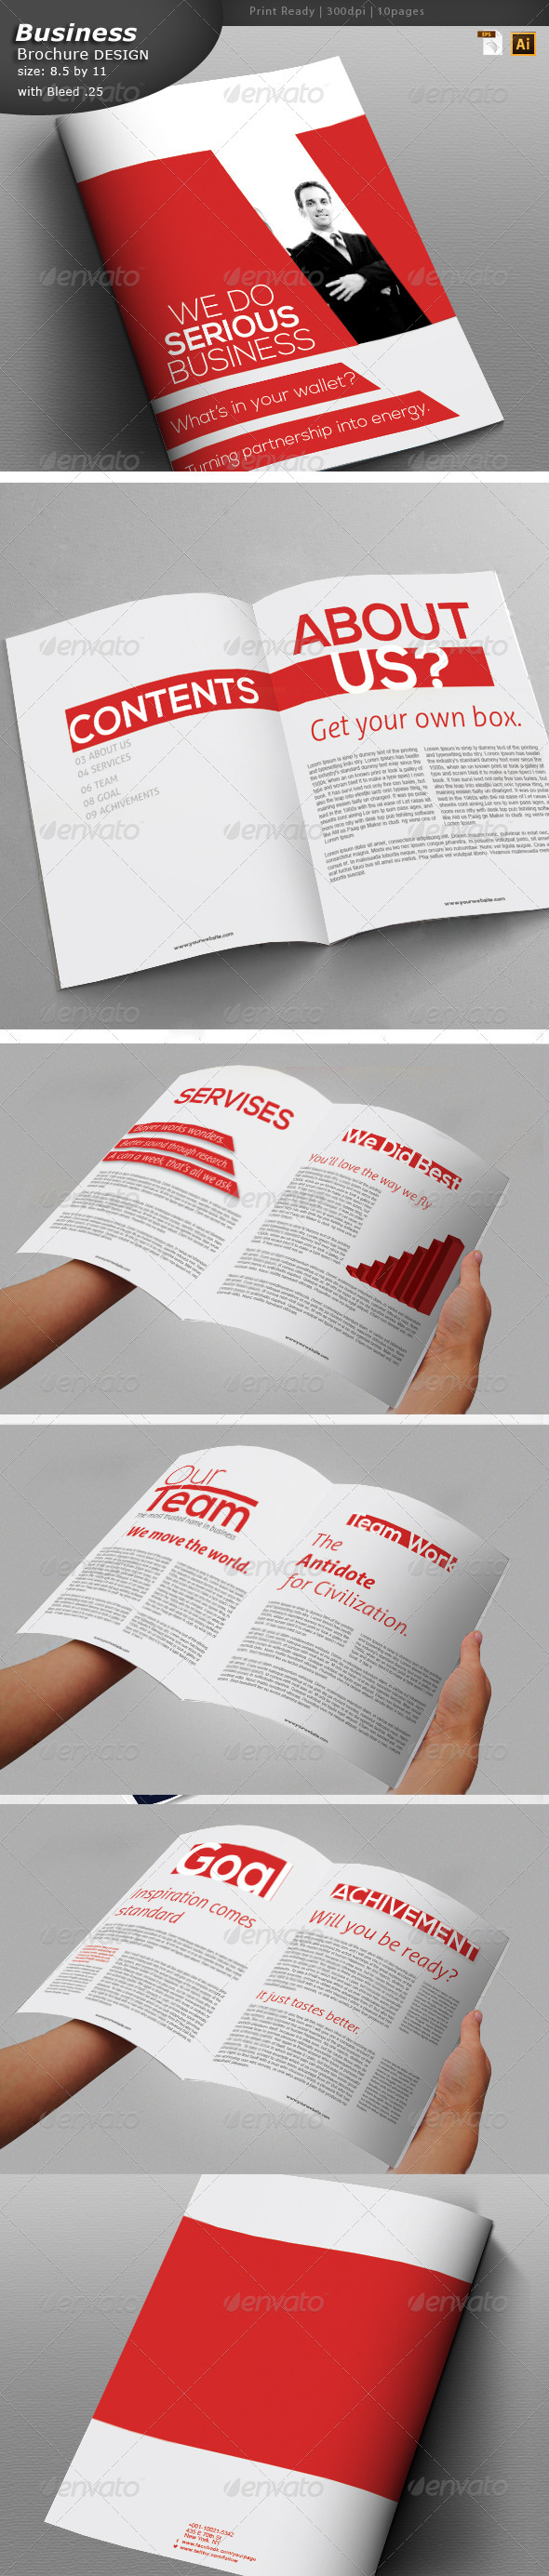 GraphicRiver Business Brochure Design 6052195